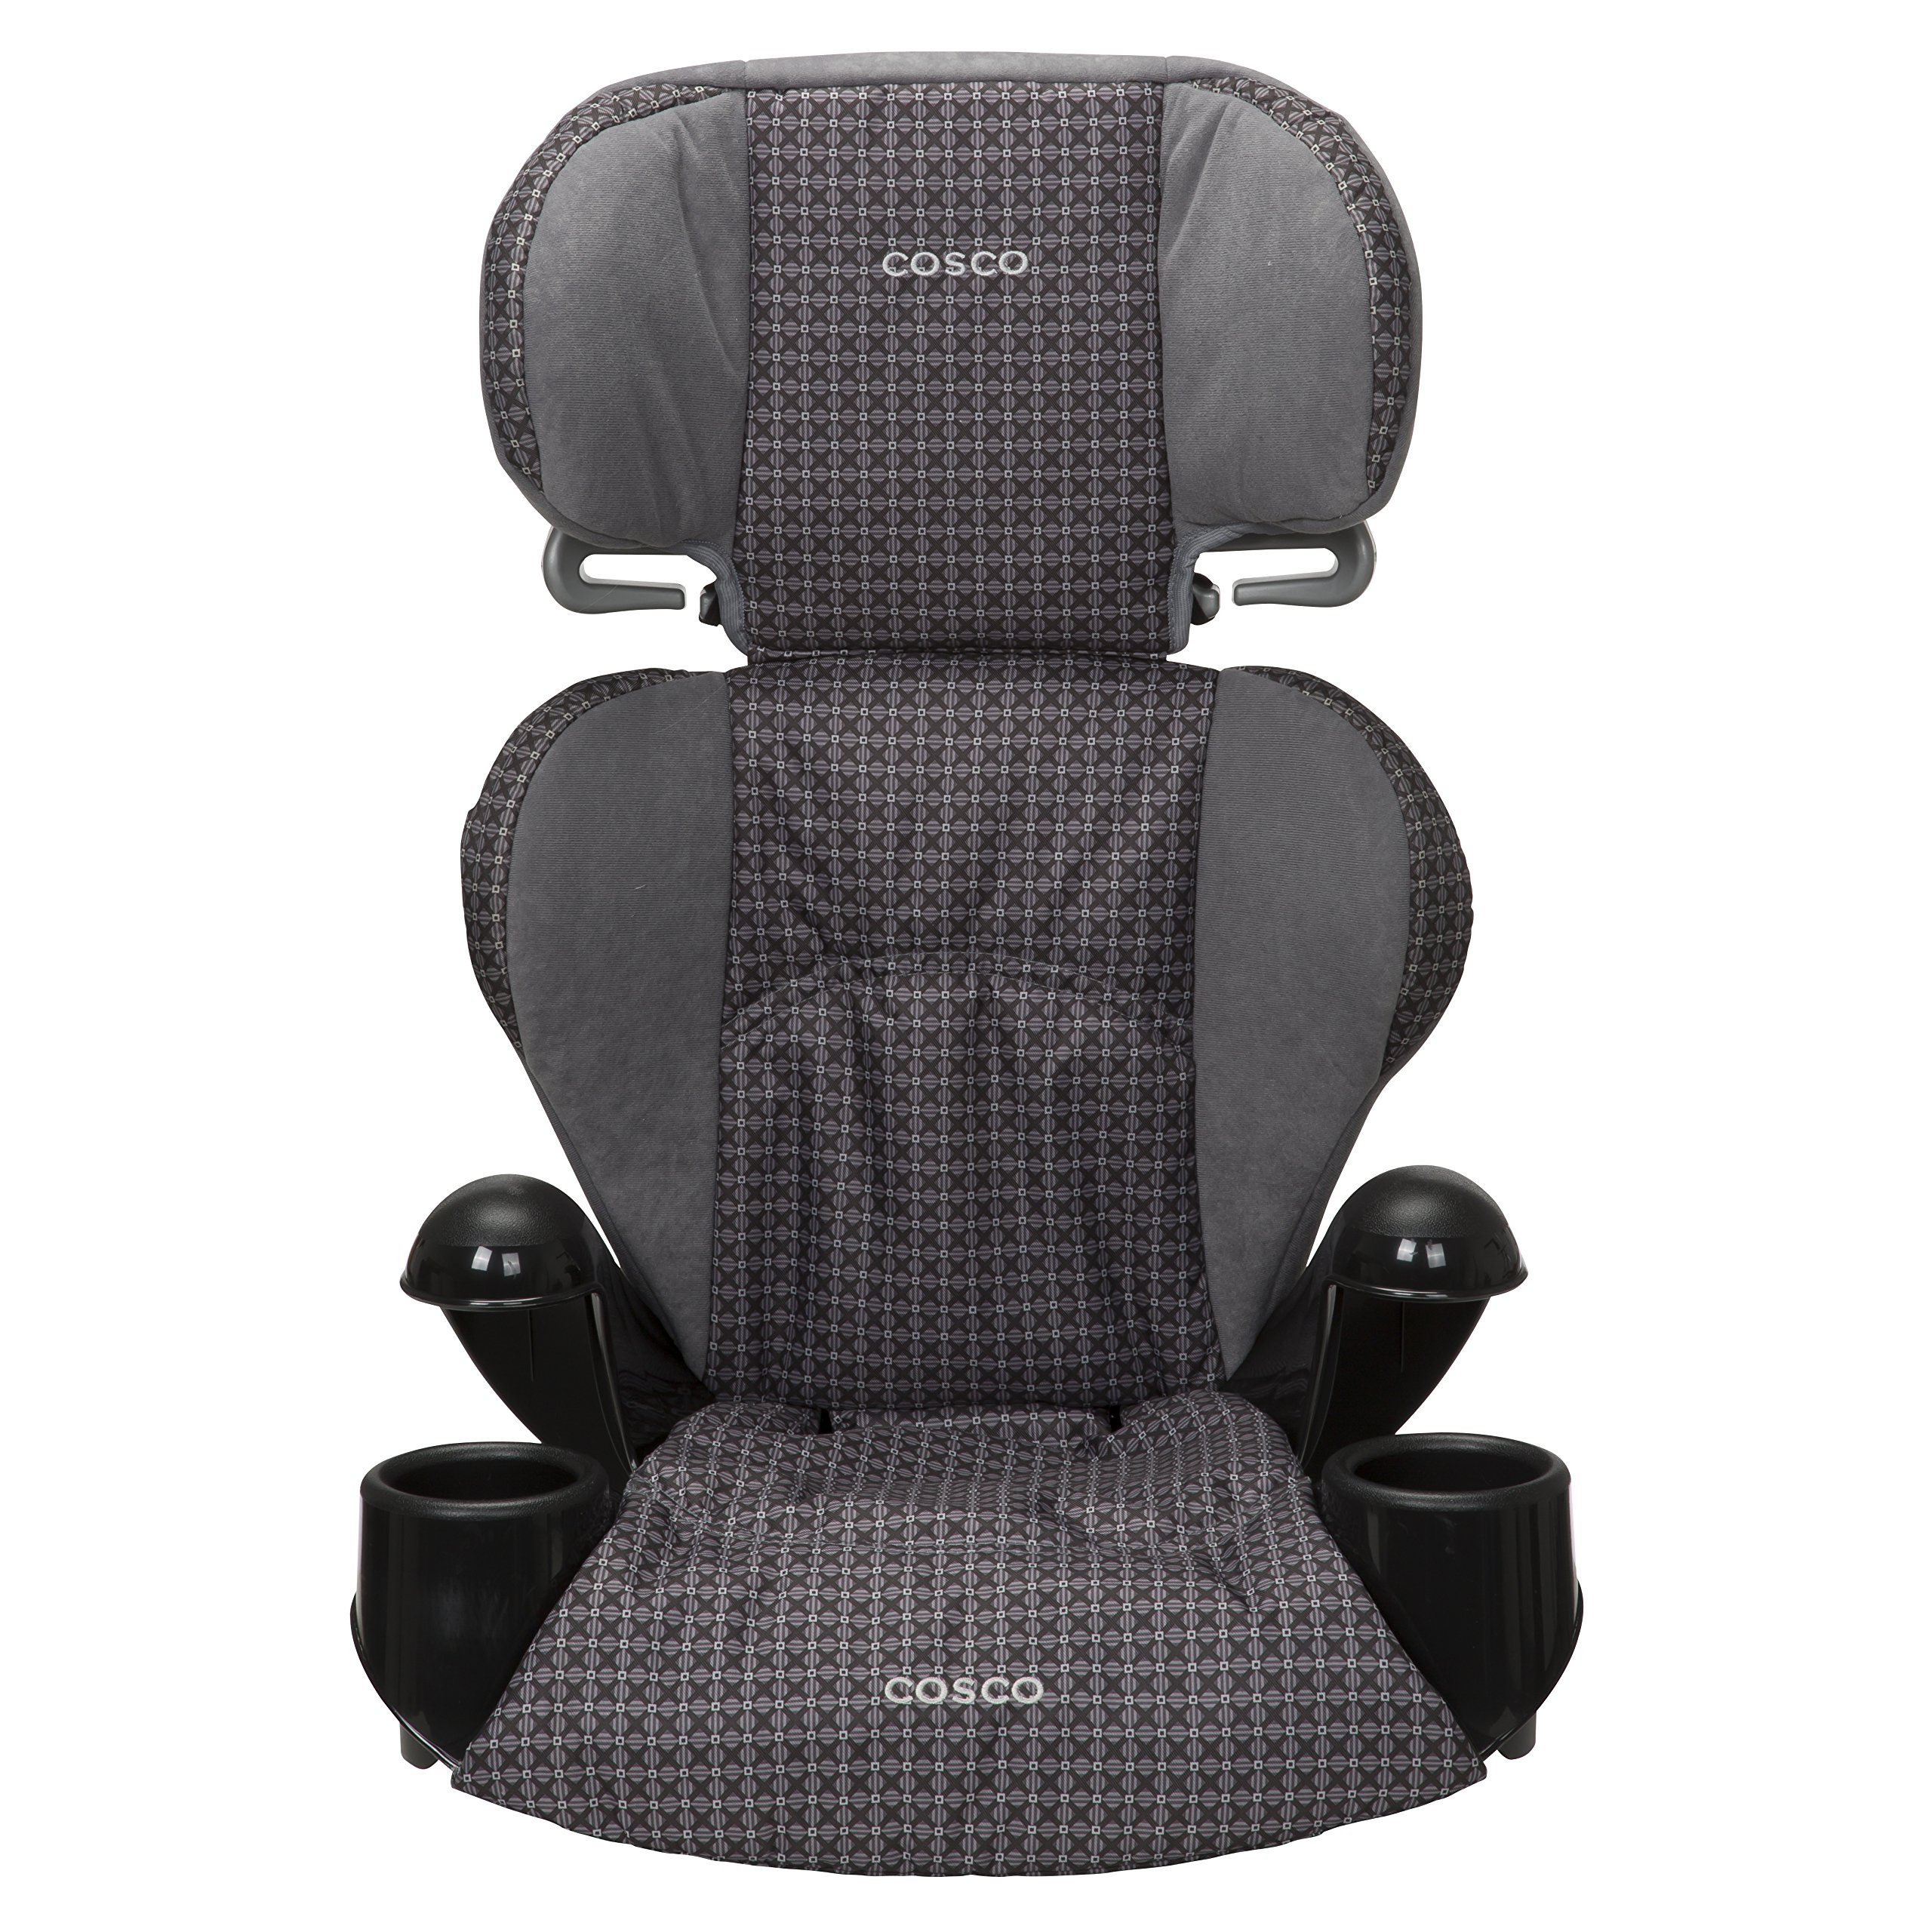 Cosco Rightway Booster Car Seat, Emerson